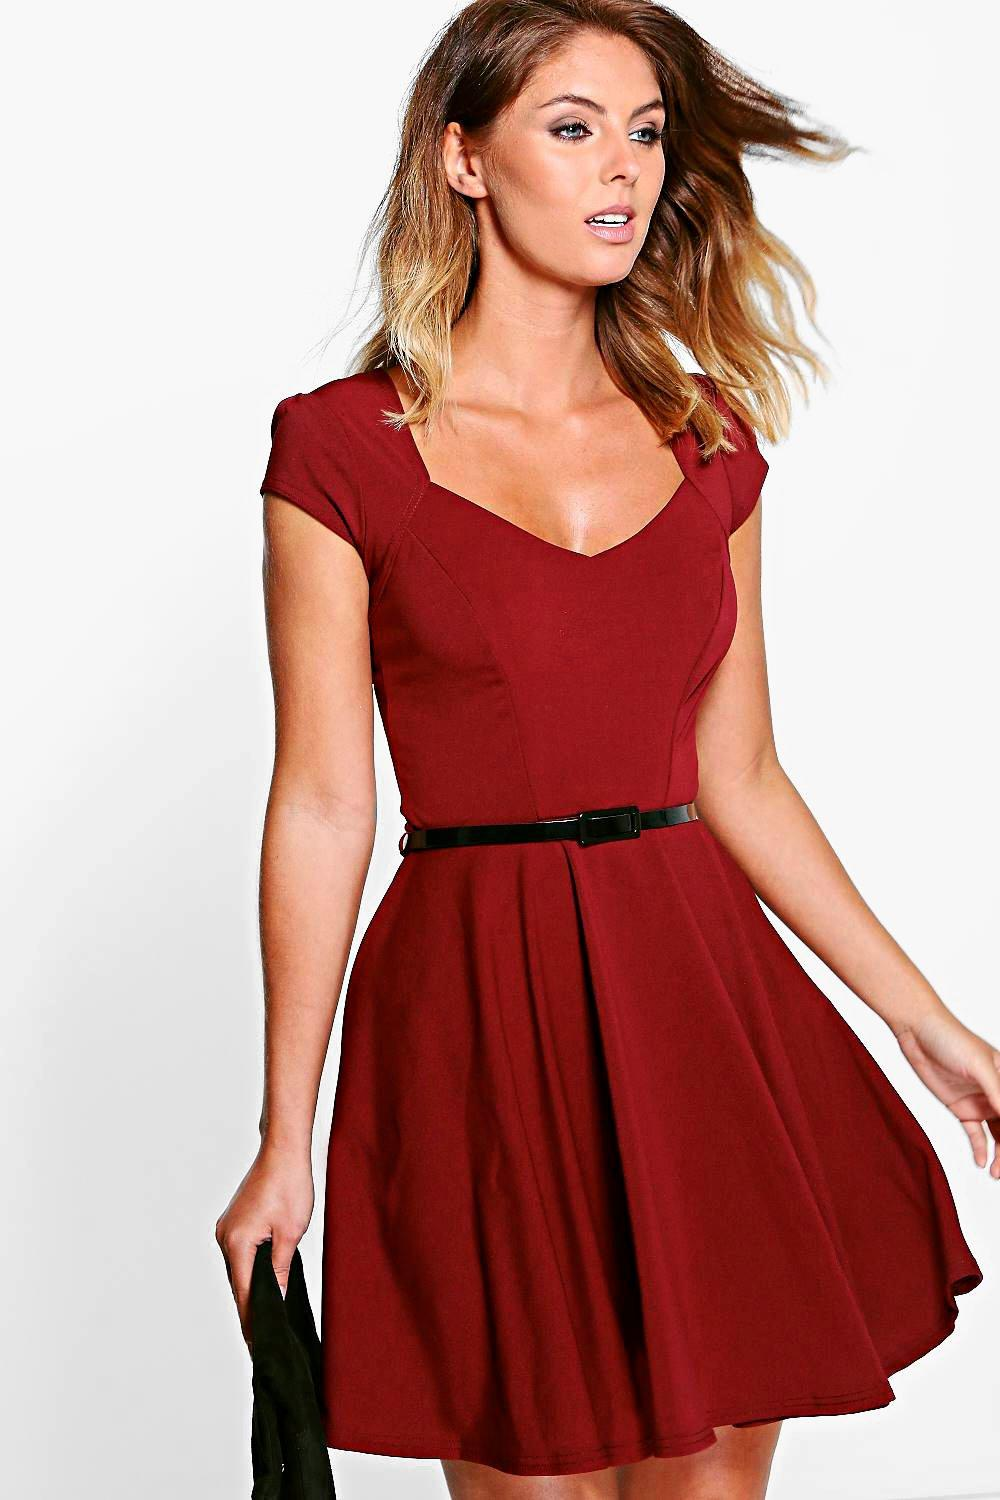 Red casual dresses